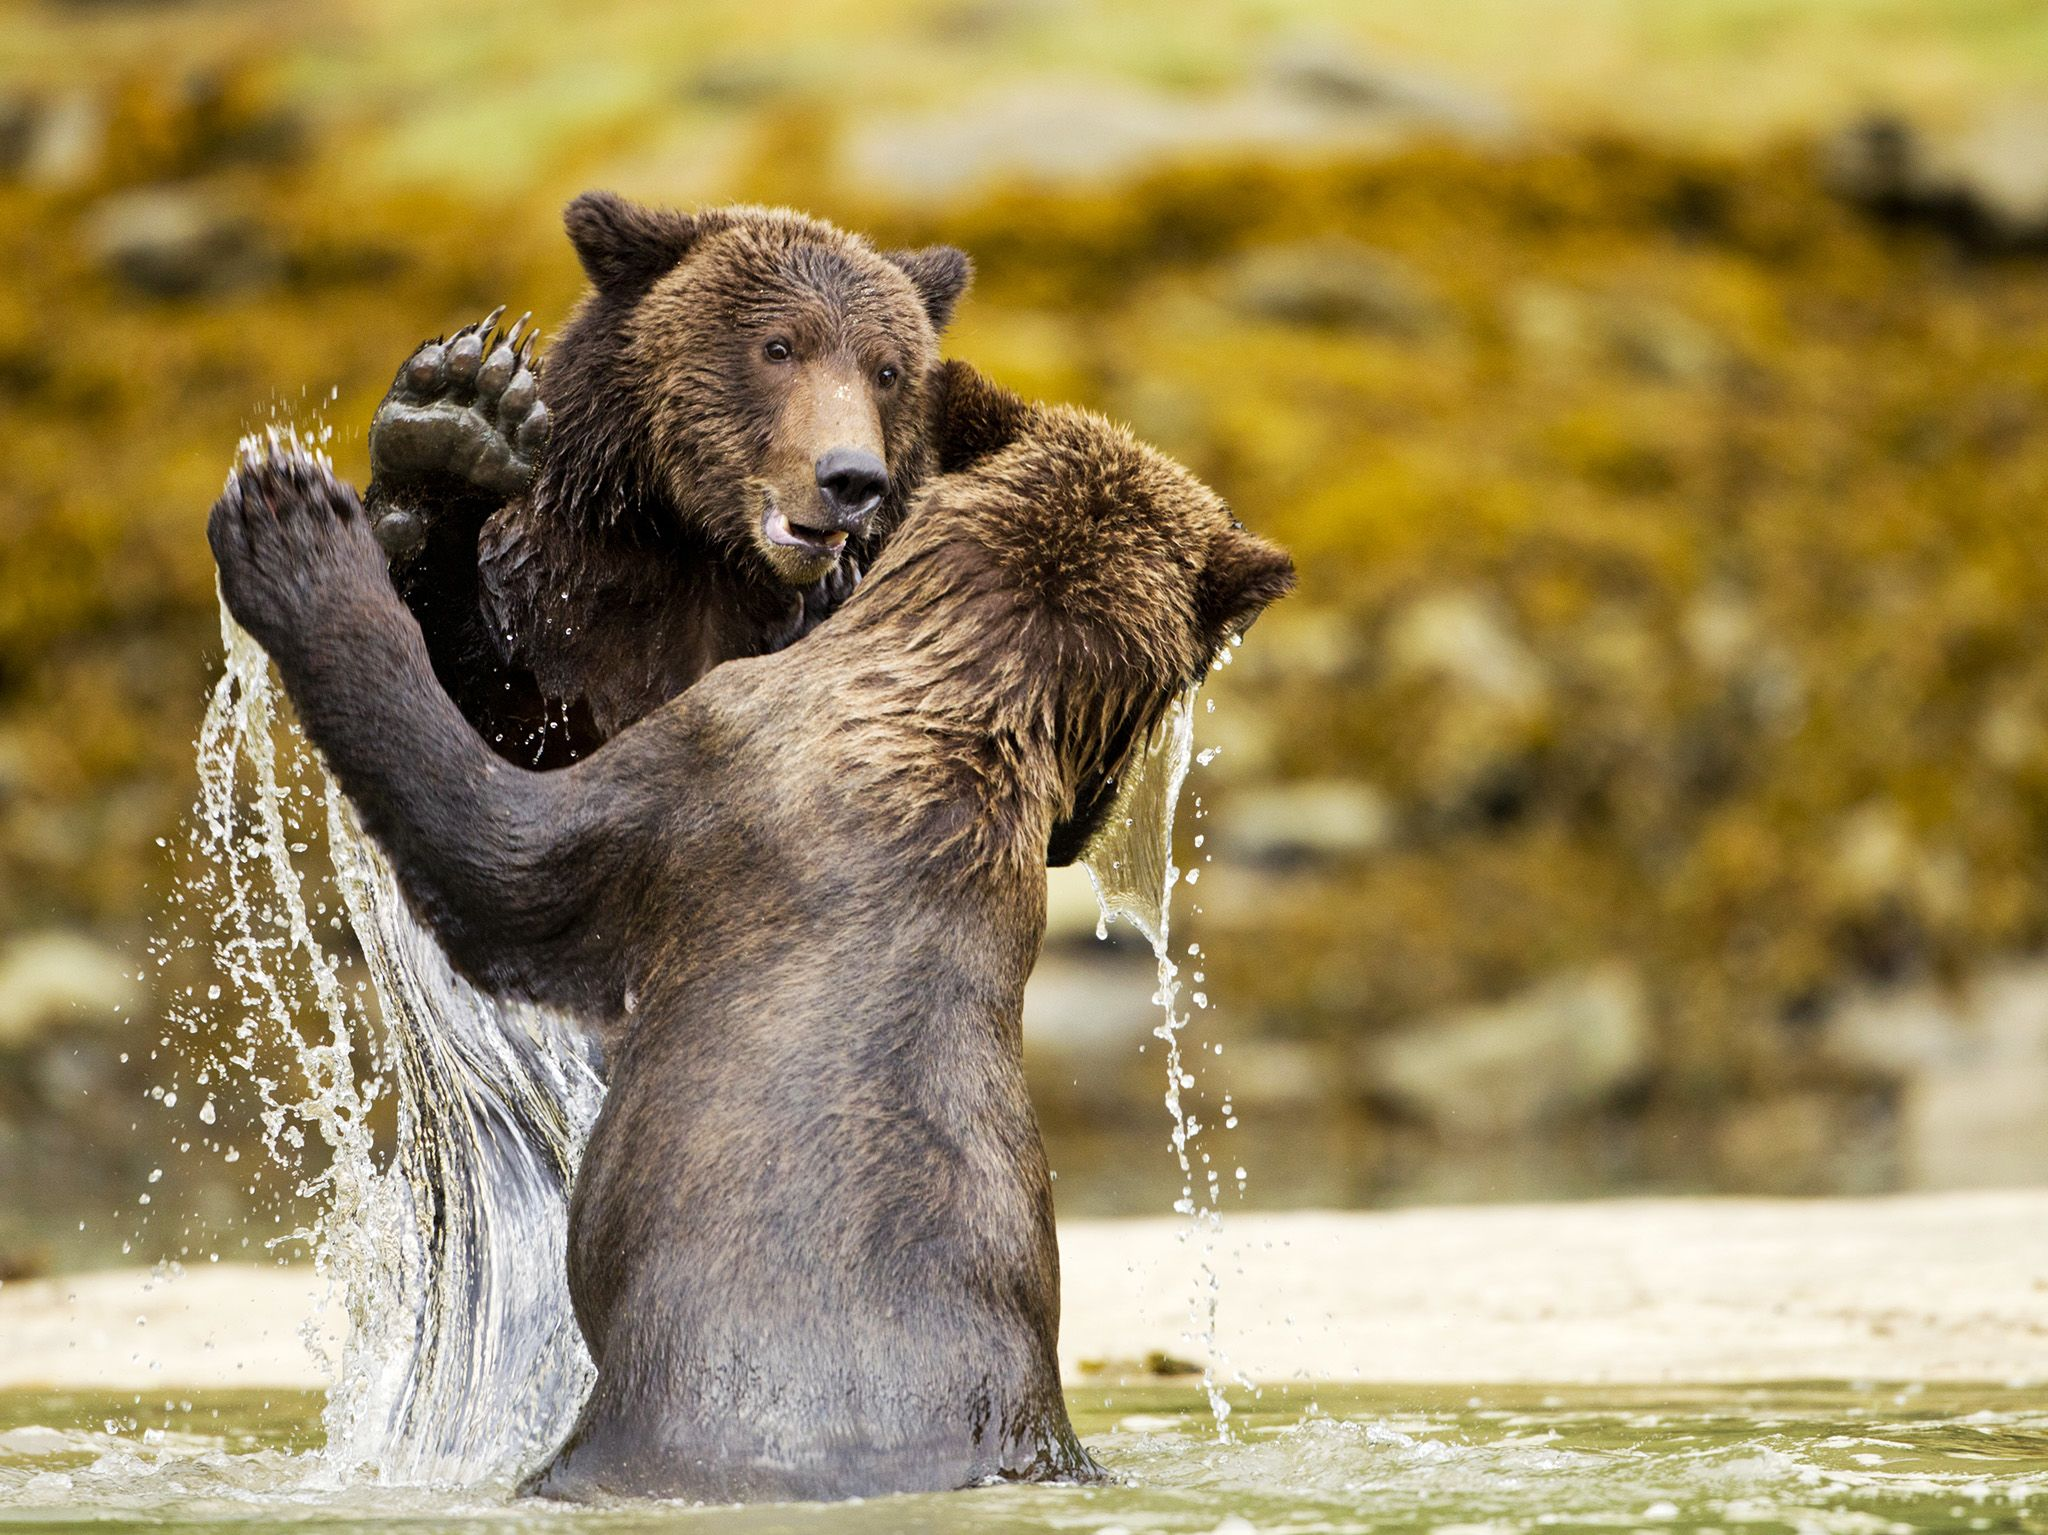 Two Coastal Brown Bears (Ursus arctos) sparring in shallow stream near Kinak Bay. This image is... [Photo of the day - August 2020]